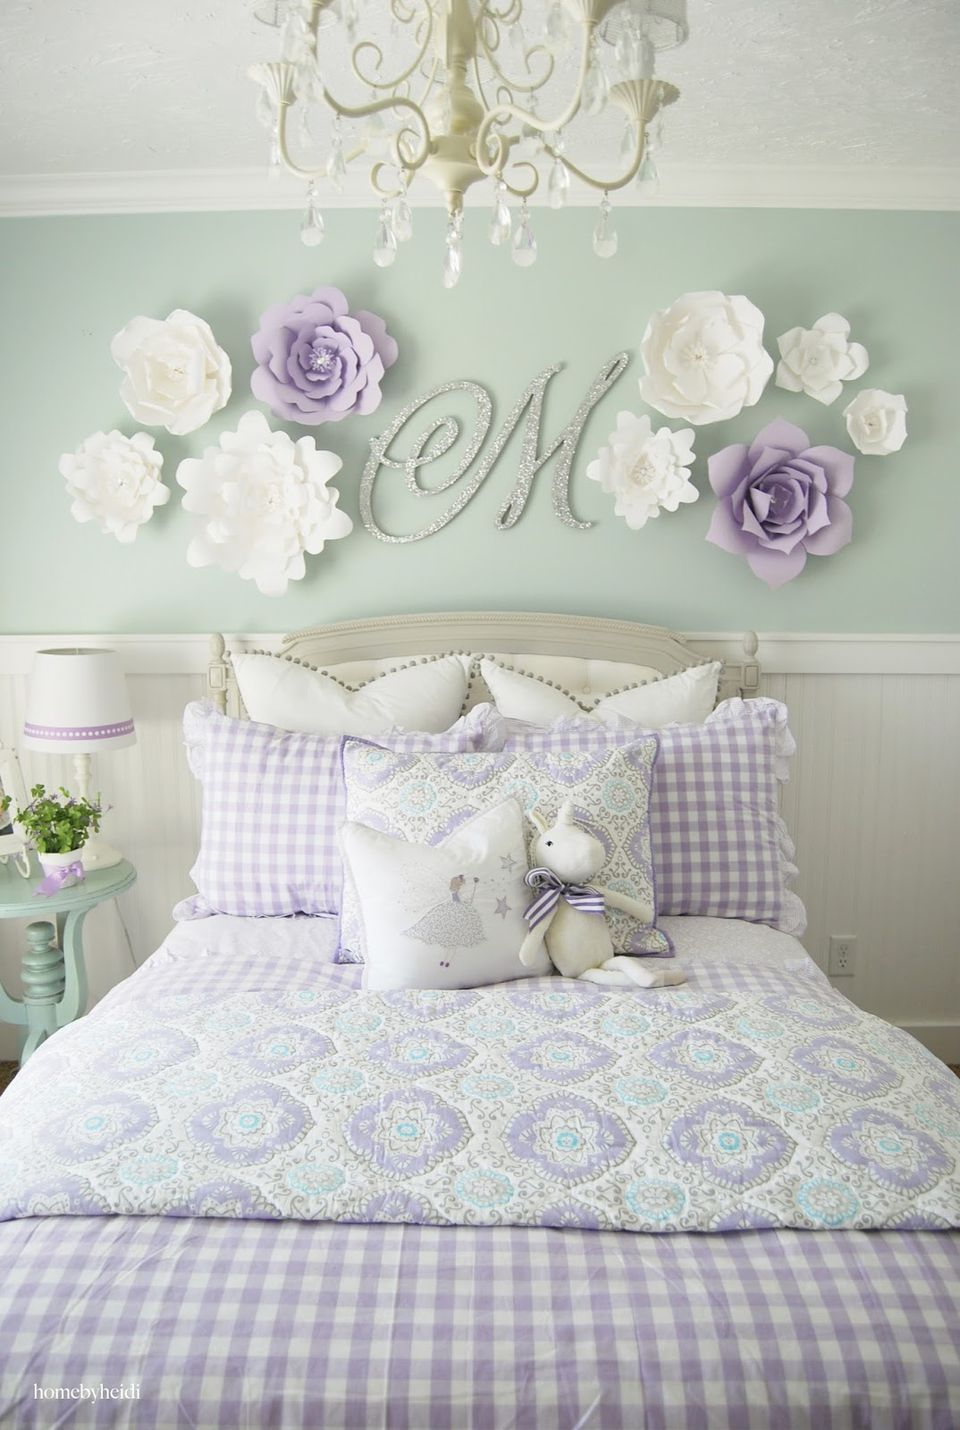 Paper flower wall decor for girl s room. 24 Wall Decor Ideas for Girls  Rooms